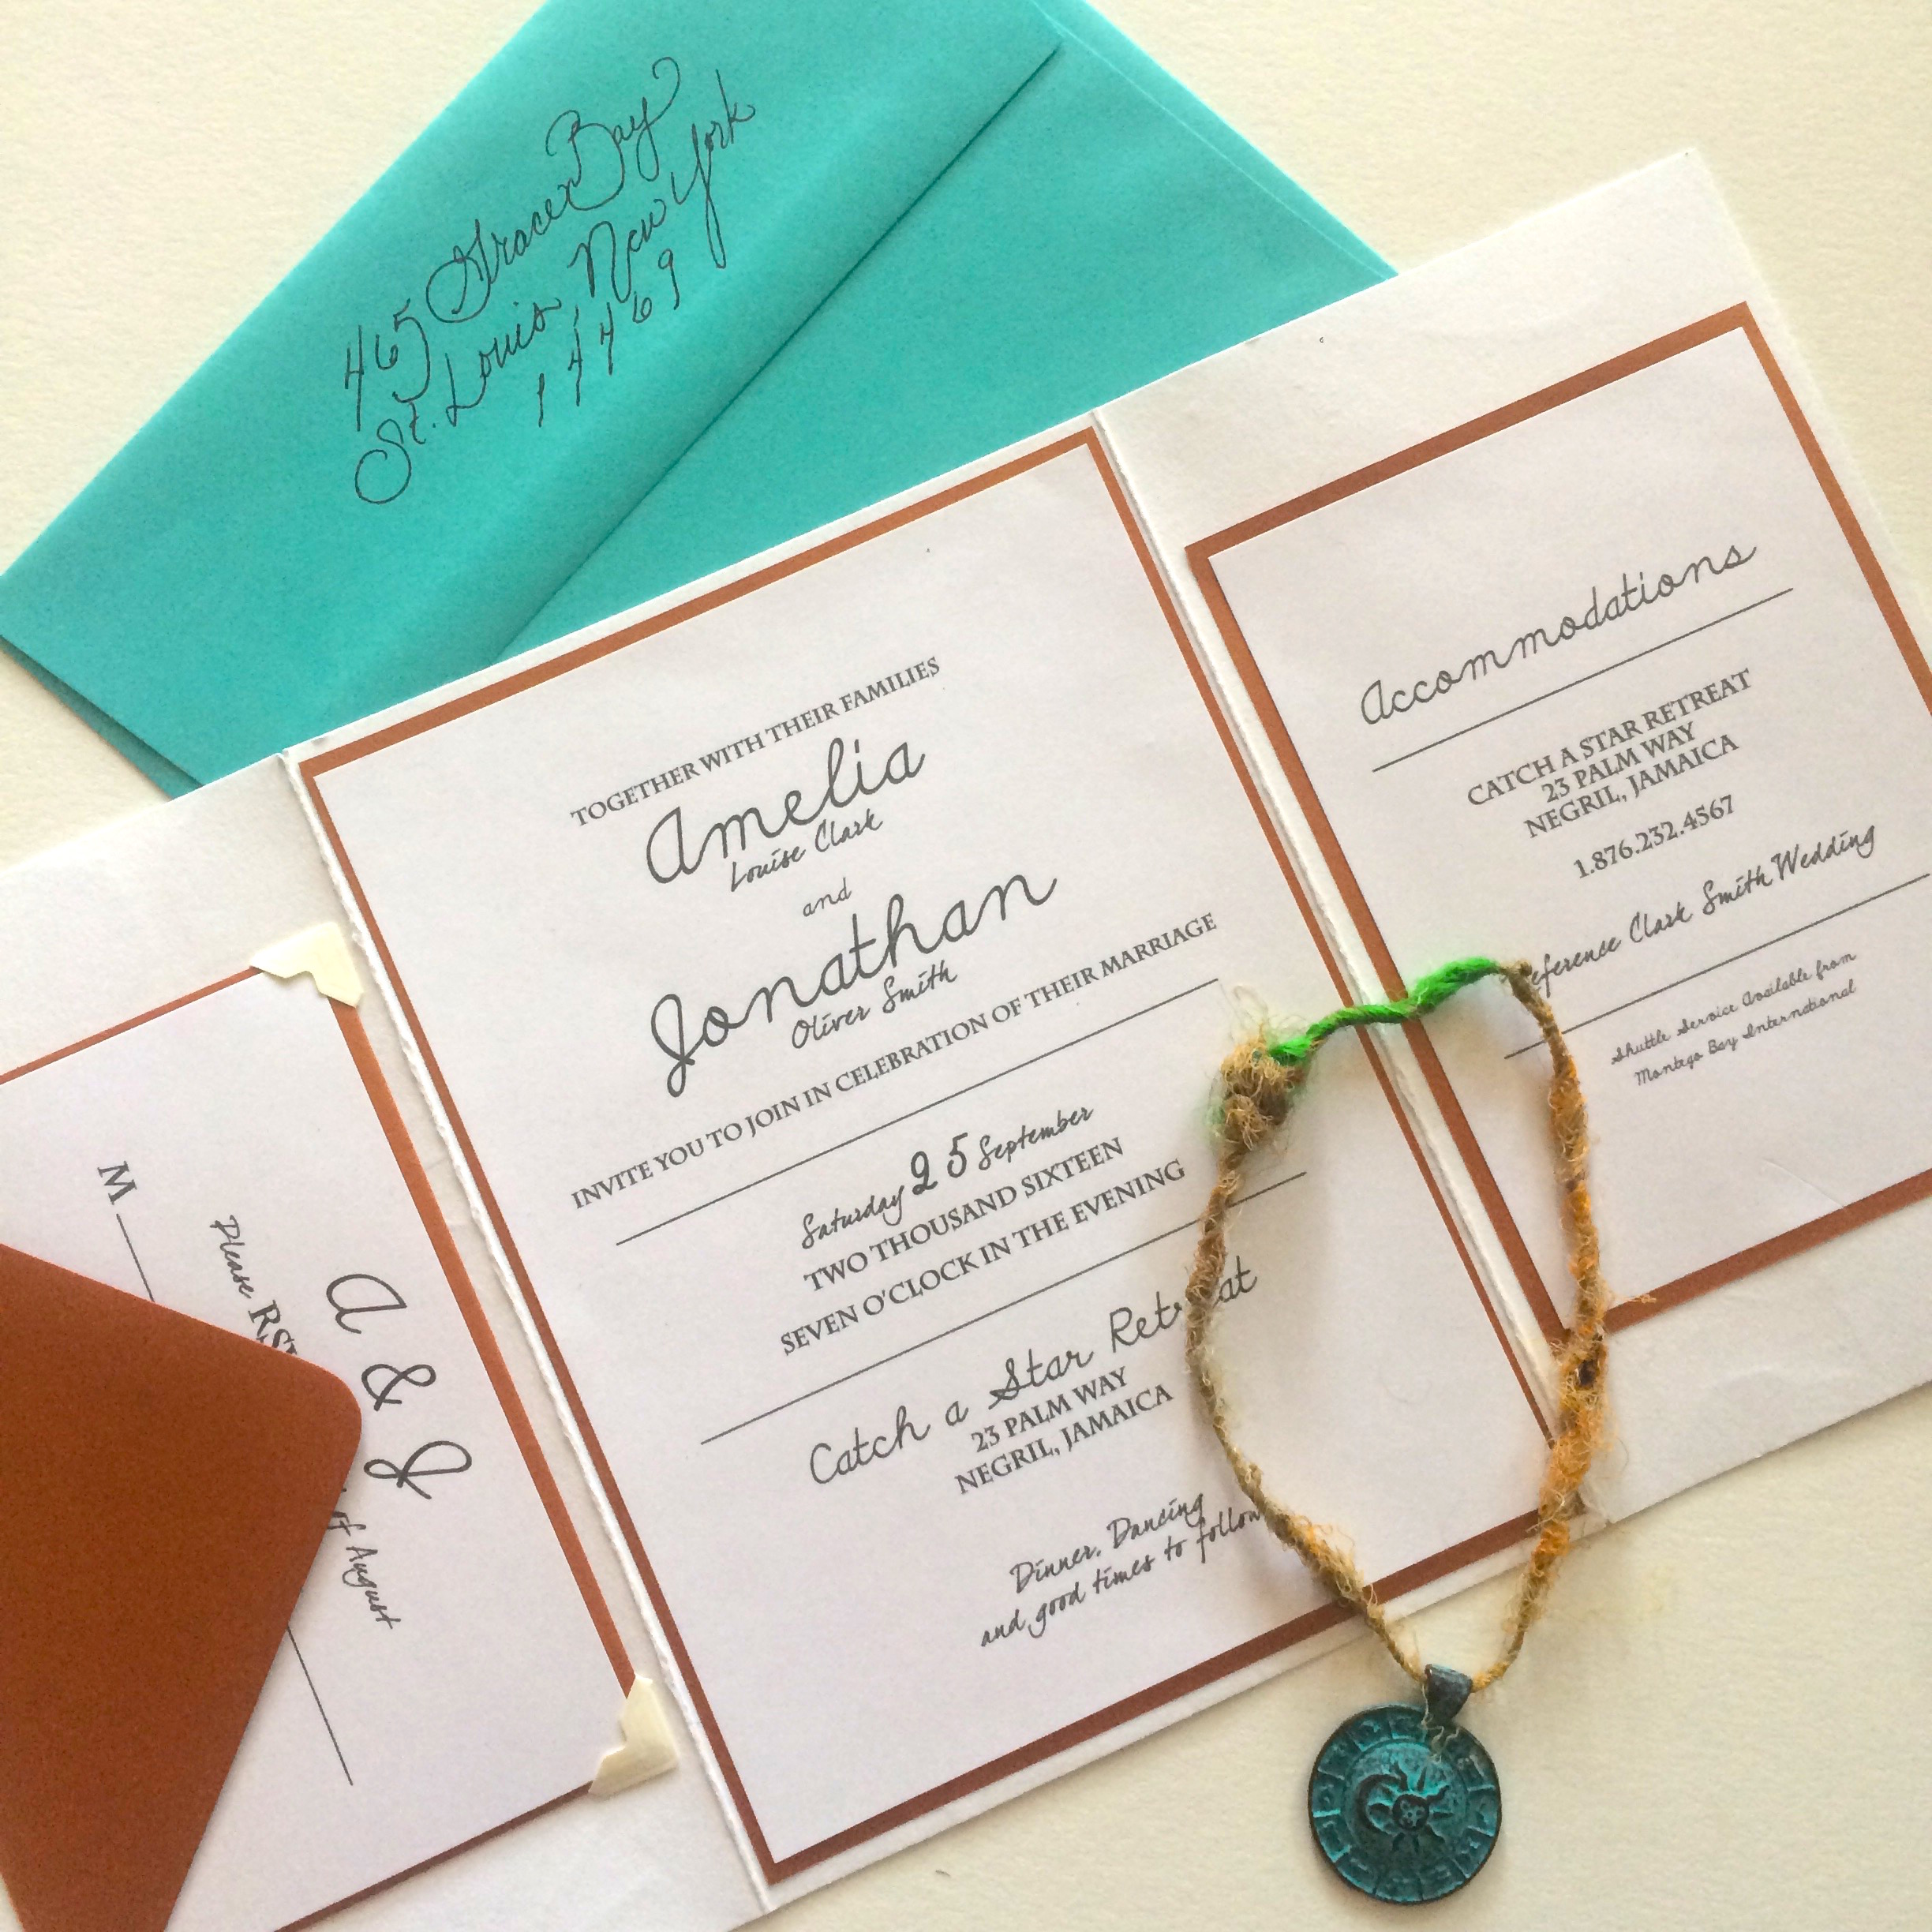 Destination wedding invitations - Turquoise envelope with copper toned interior lining